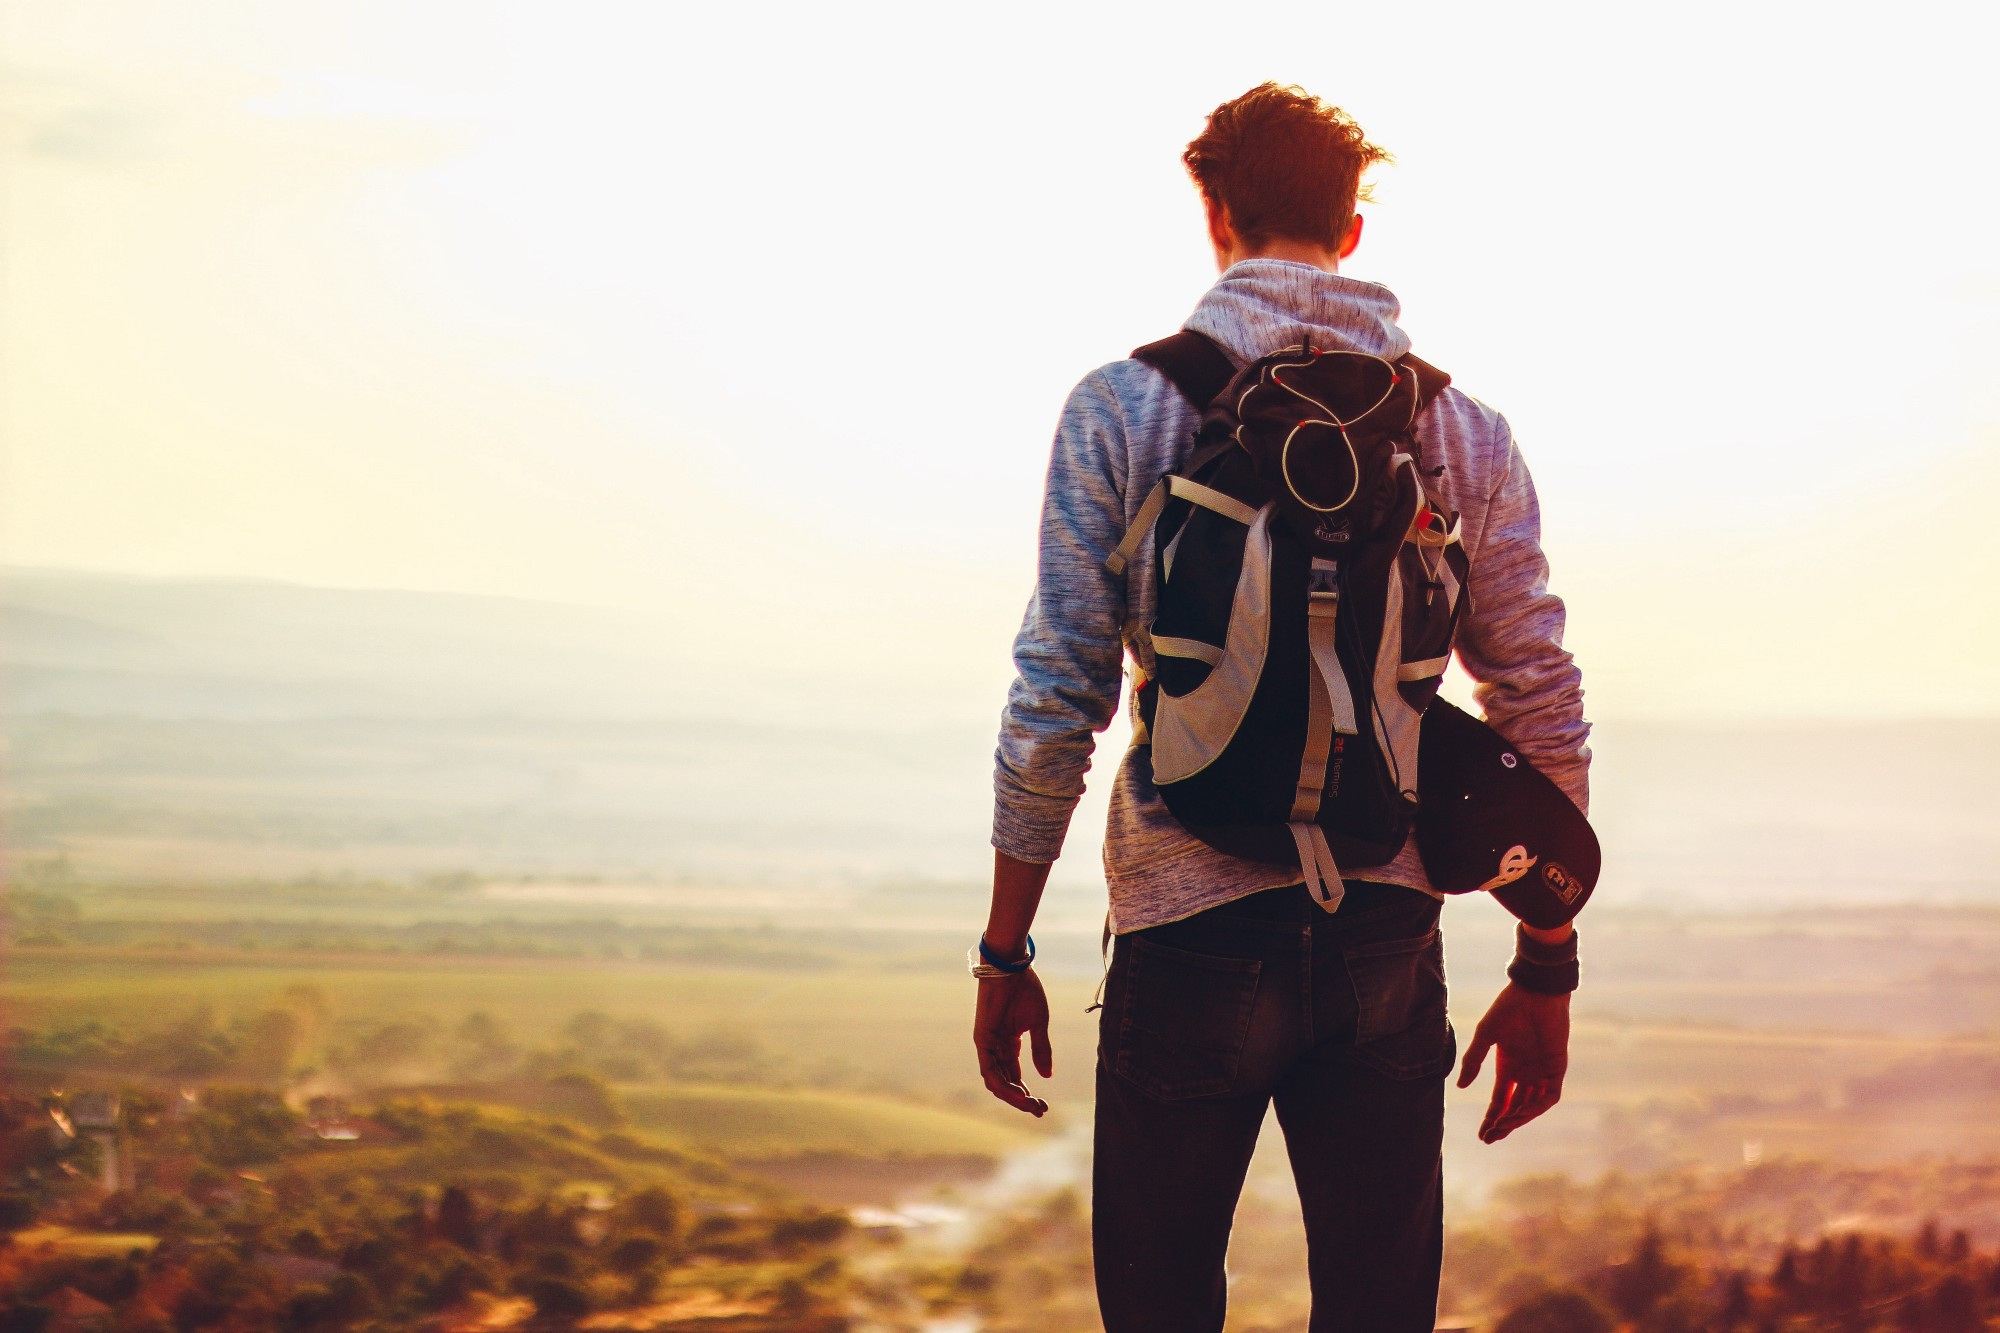 5 Ways To Fully mit To Your Dreams So You Never Give Up